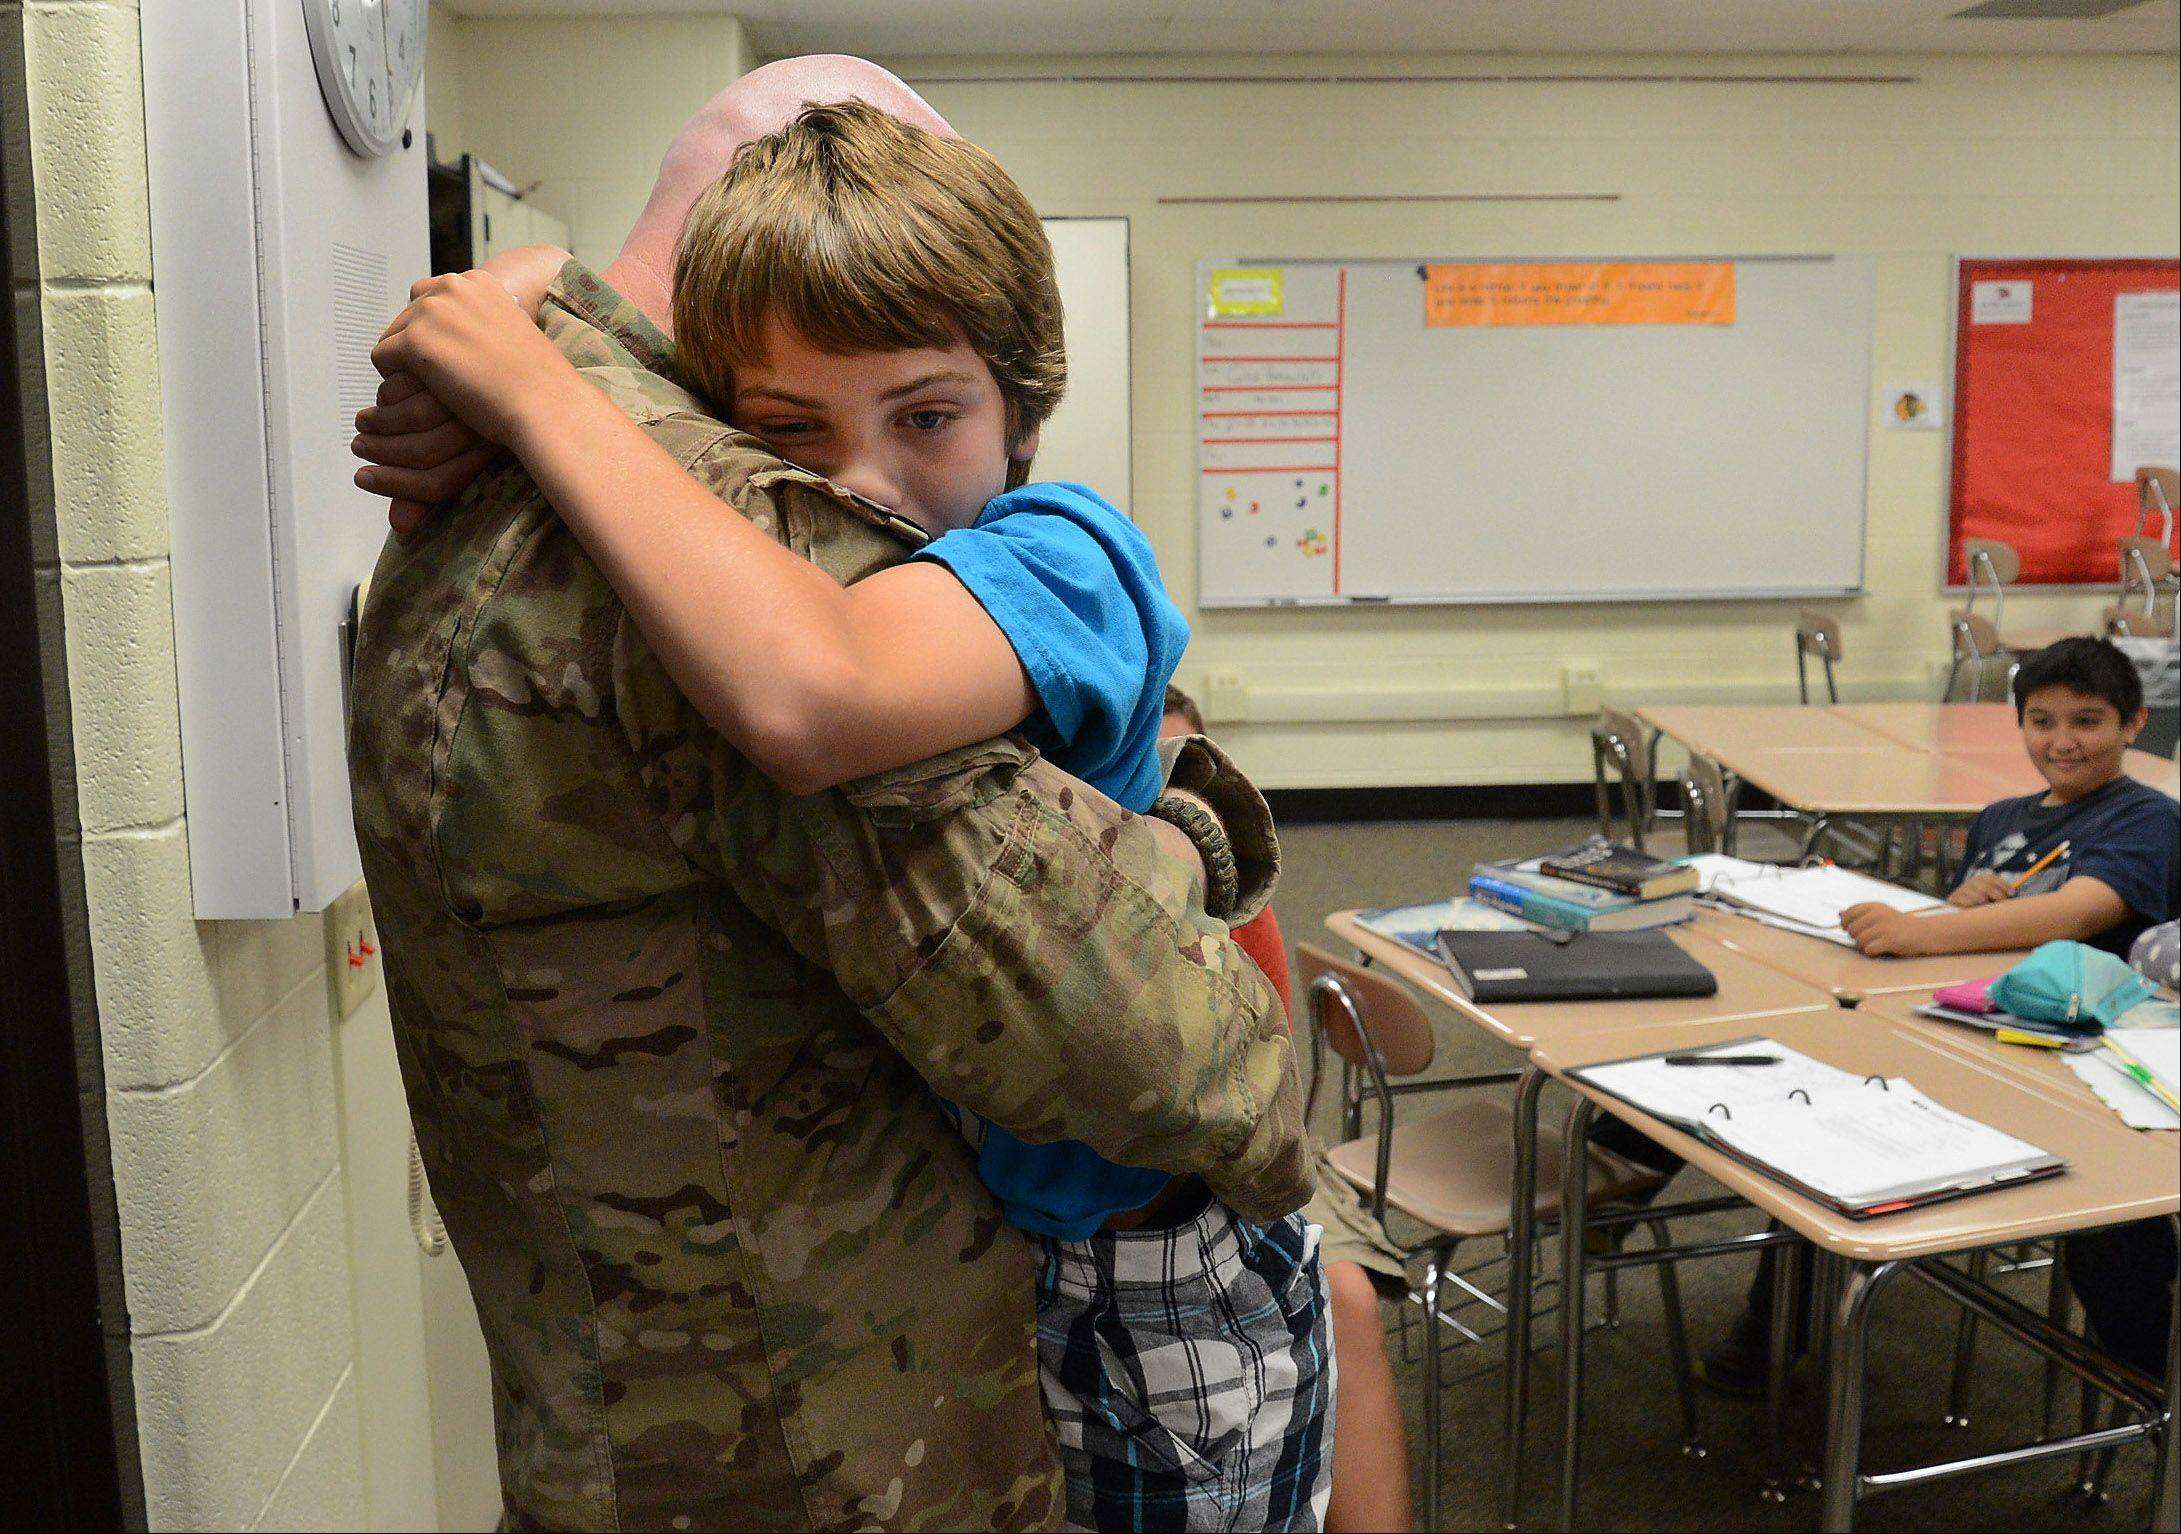 Navy Chief Gunner�s Mate Patrick Fissette surprises his son, Tristan, at Mead Junior High School in Elk Grove Village Friday after returning home from his last tour of duty.